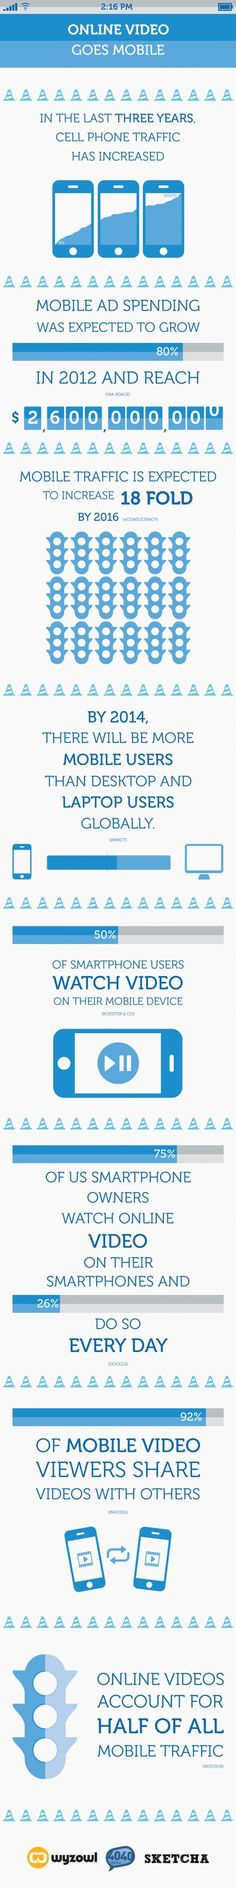 Online Video Goes Mobile - Viral In Nature | Propel Marketing